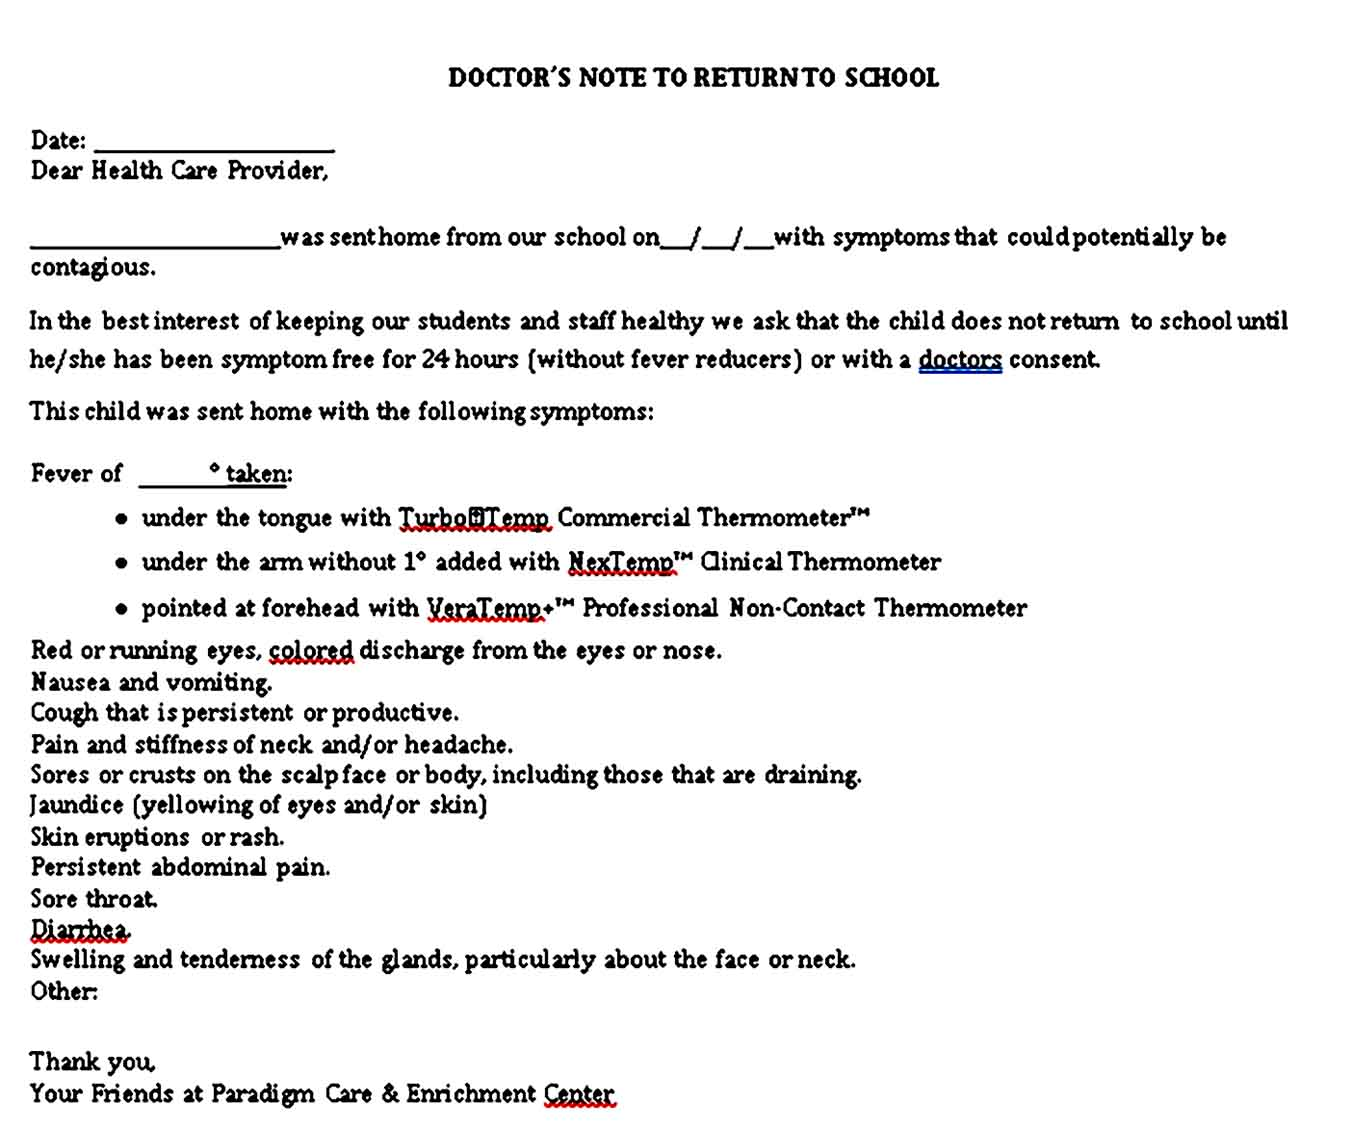 Sample Doctors Note for Student 1